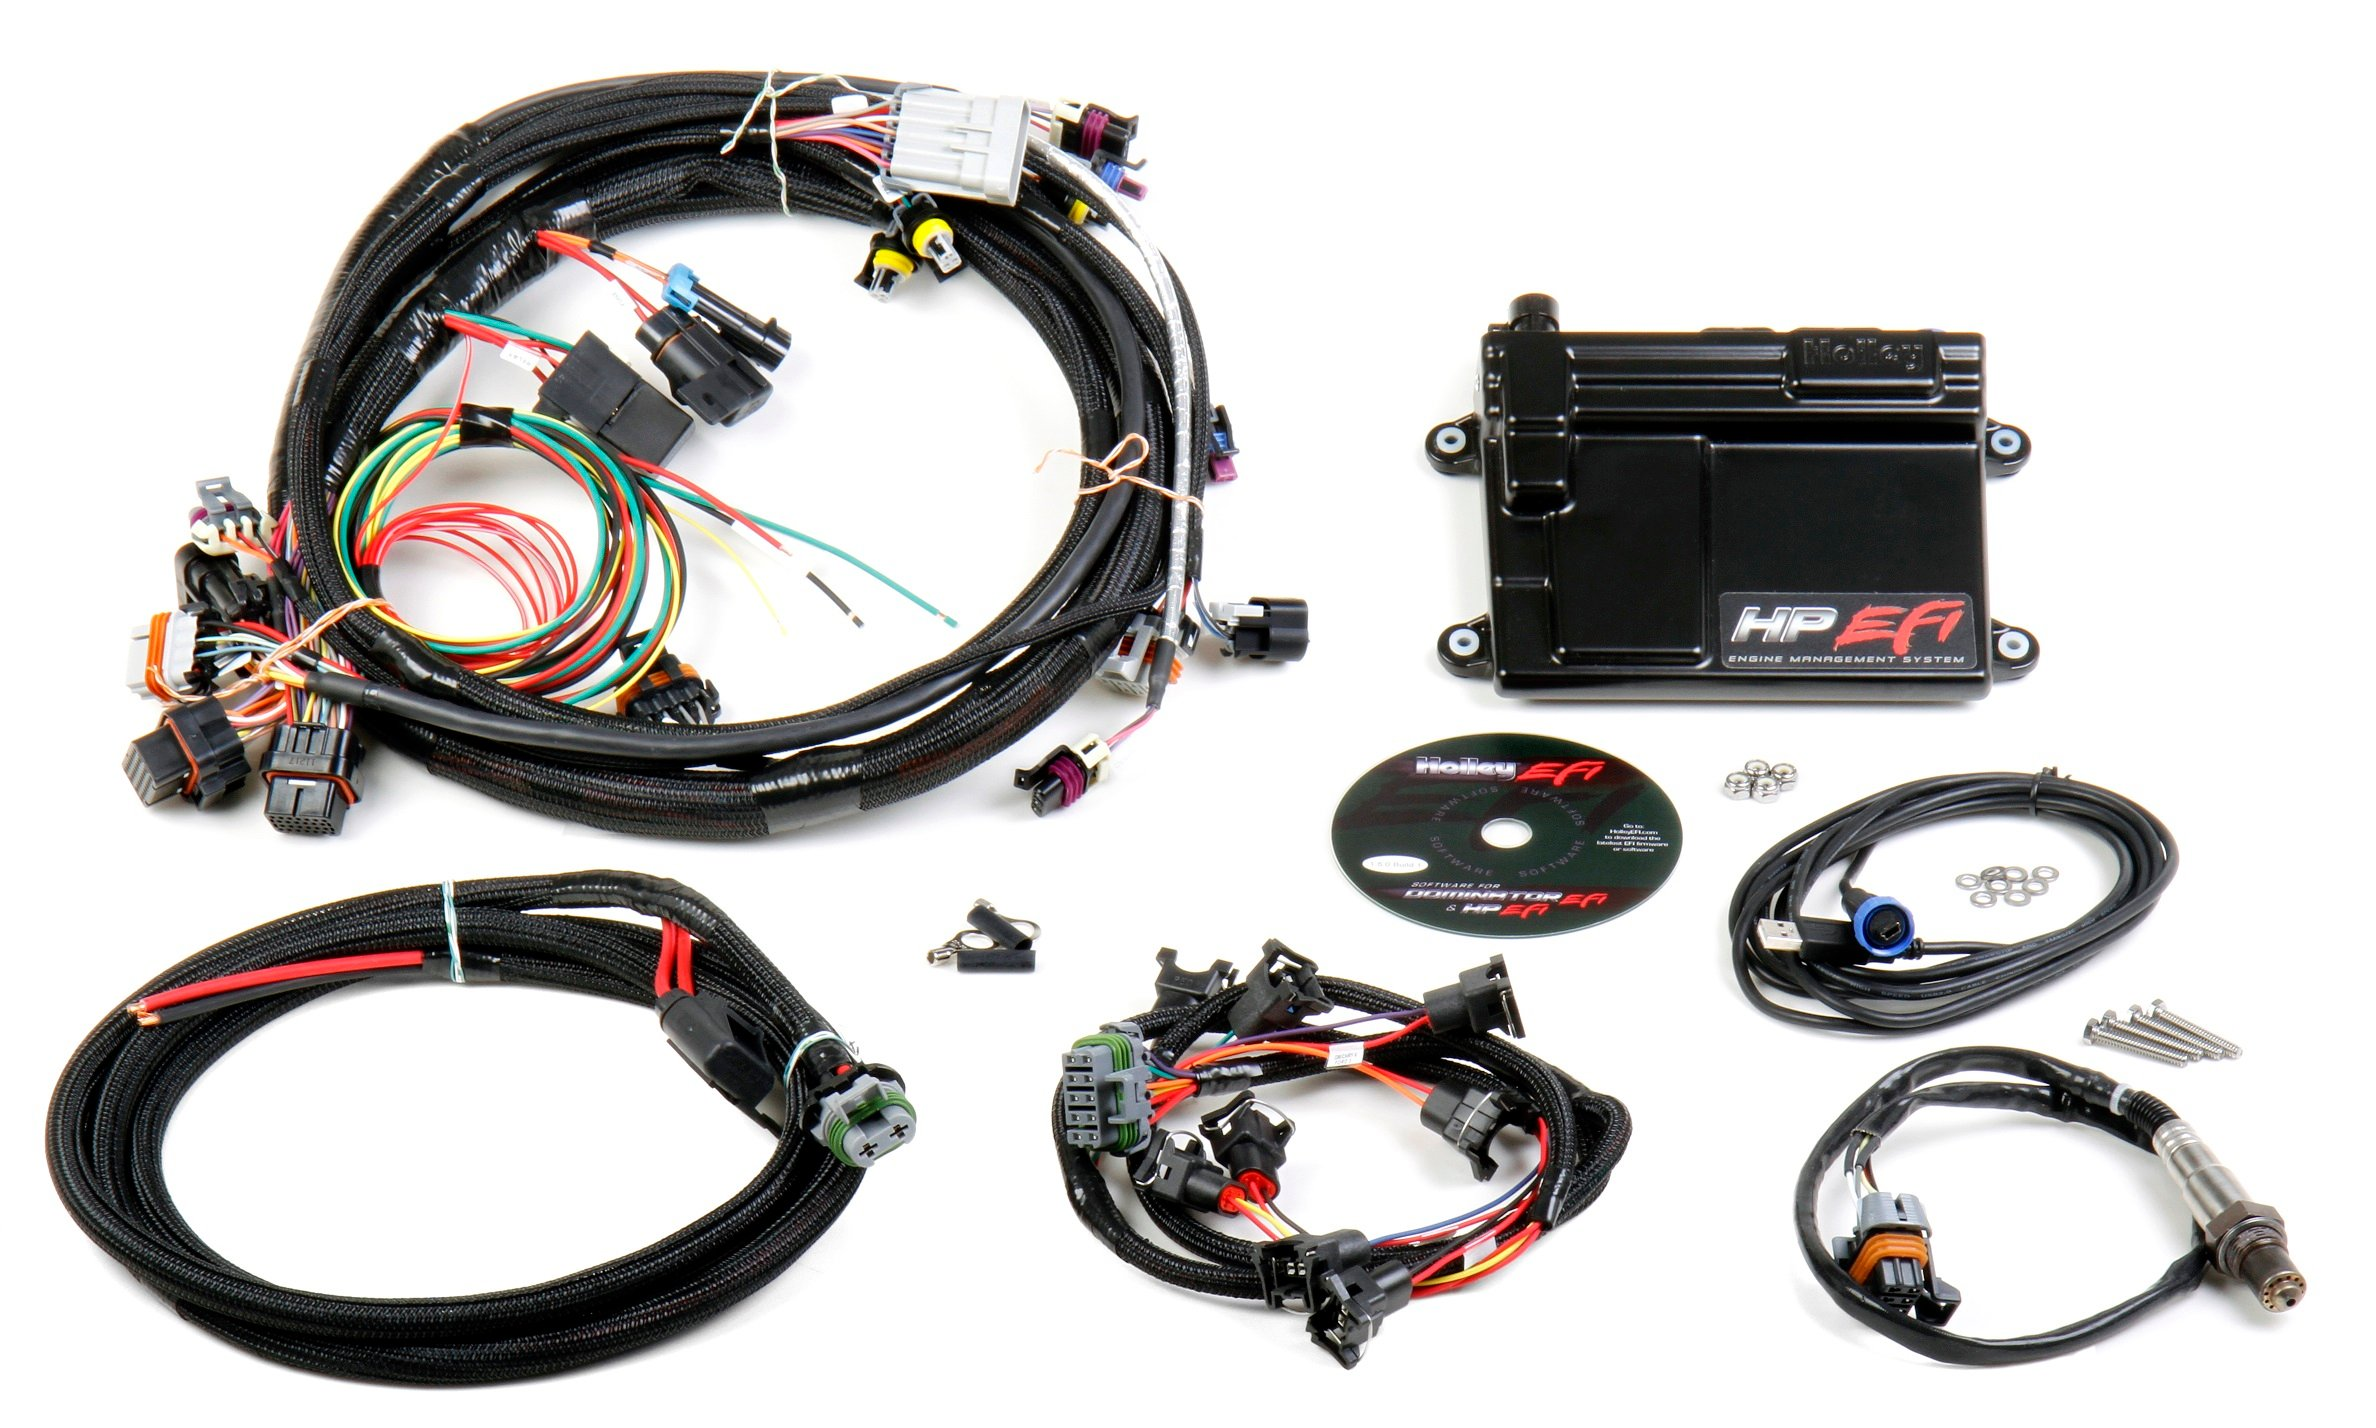 550 602 holley efi 550 602 hp efi ecu & harness kits 5 3 wiring harness stand alone at n-0.co